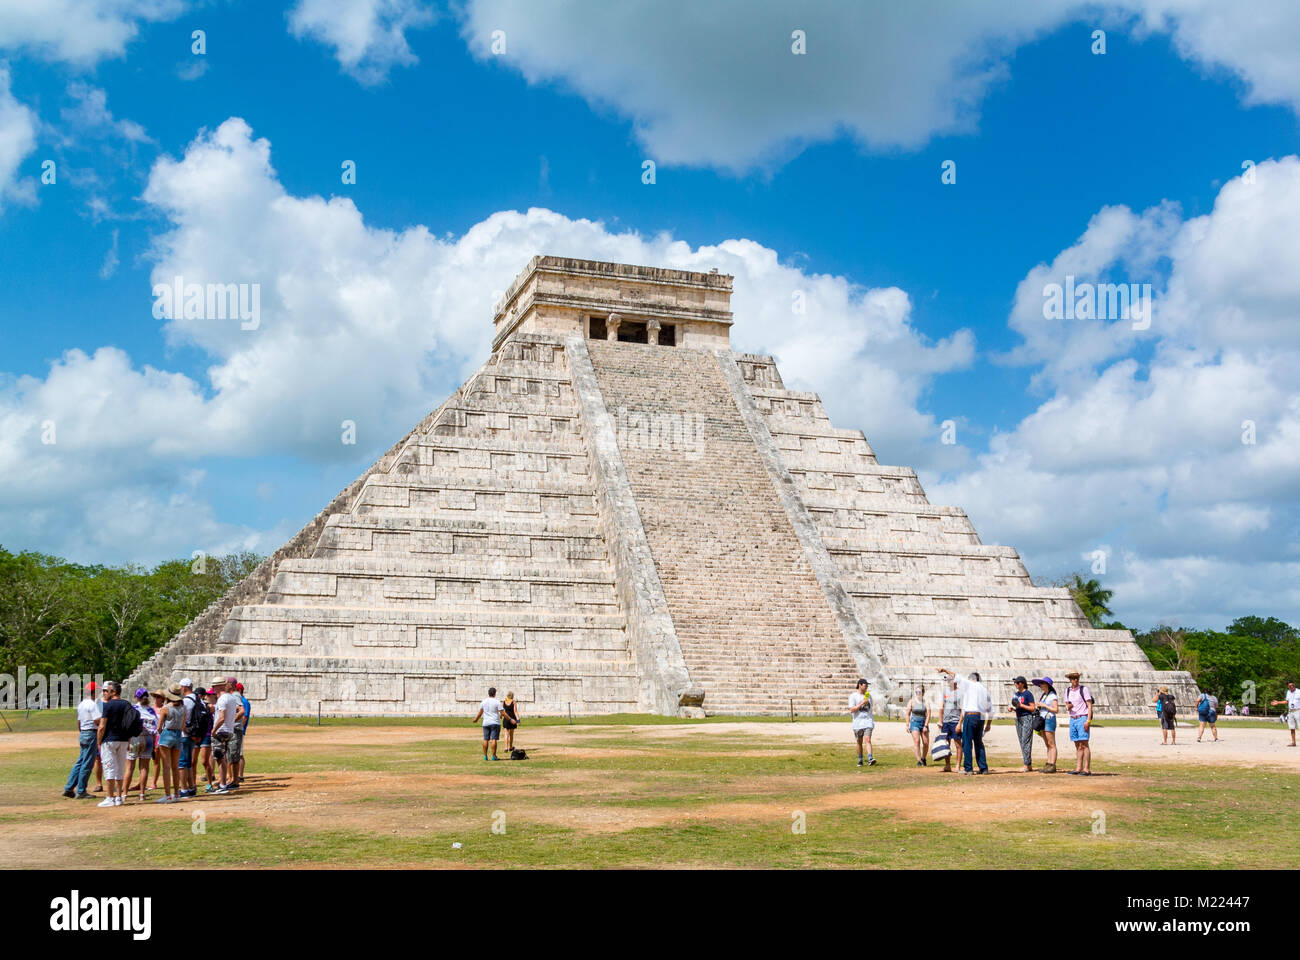 Kukulkan Temple Pyramid, Chichen Itza, Yucatan, Mexic Stock Photo